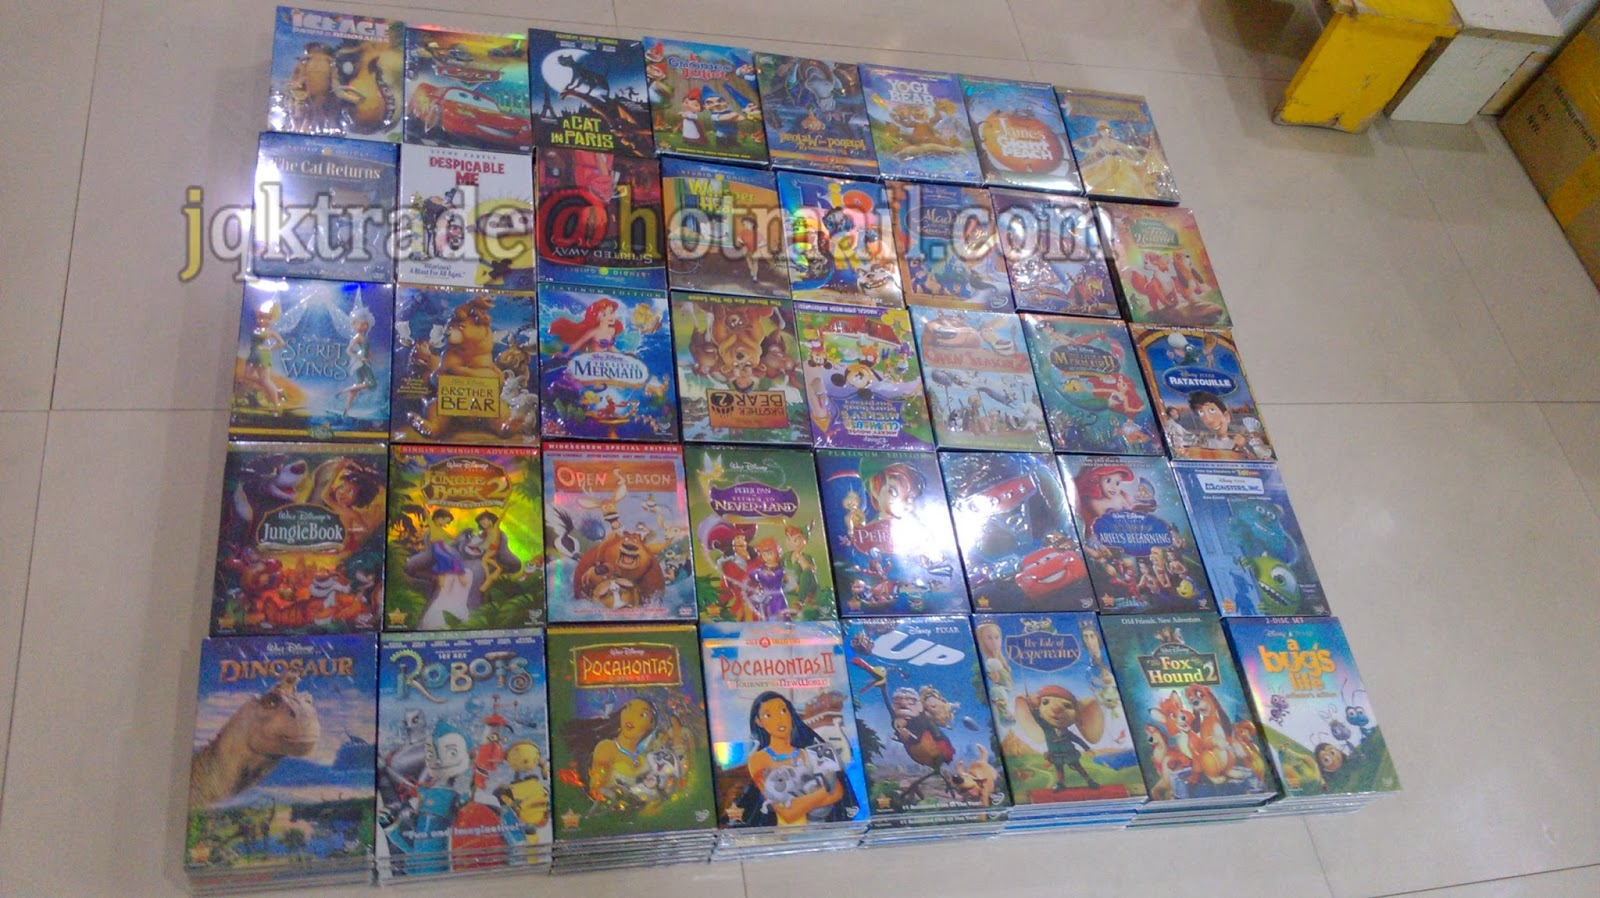 wholesale disney dvd movies with 3d slip cover wholesale new release disney movies  wholesale